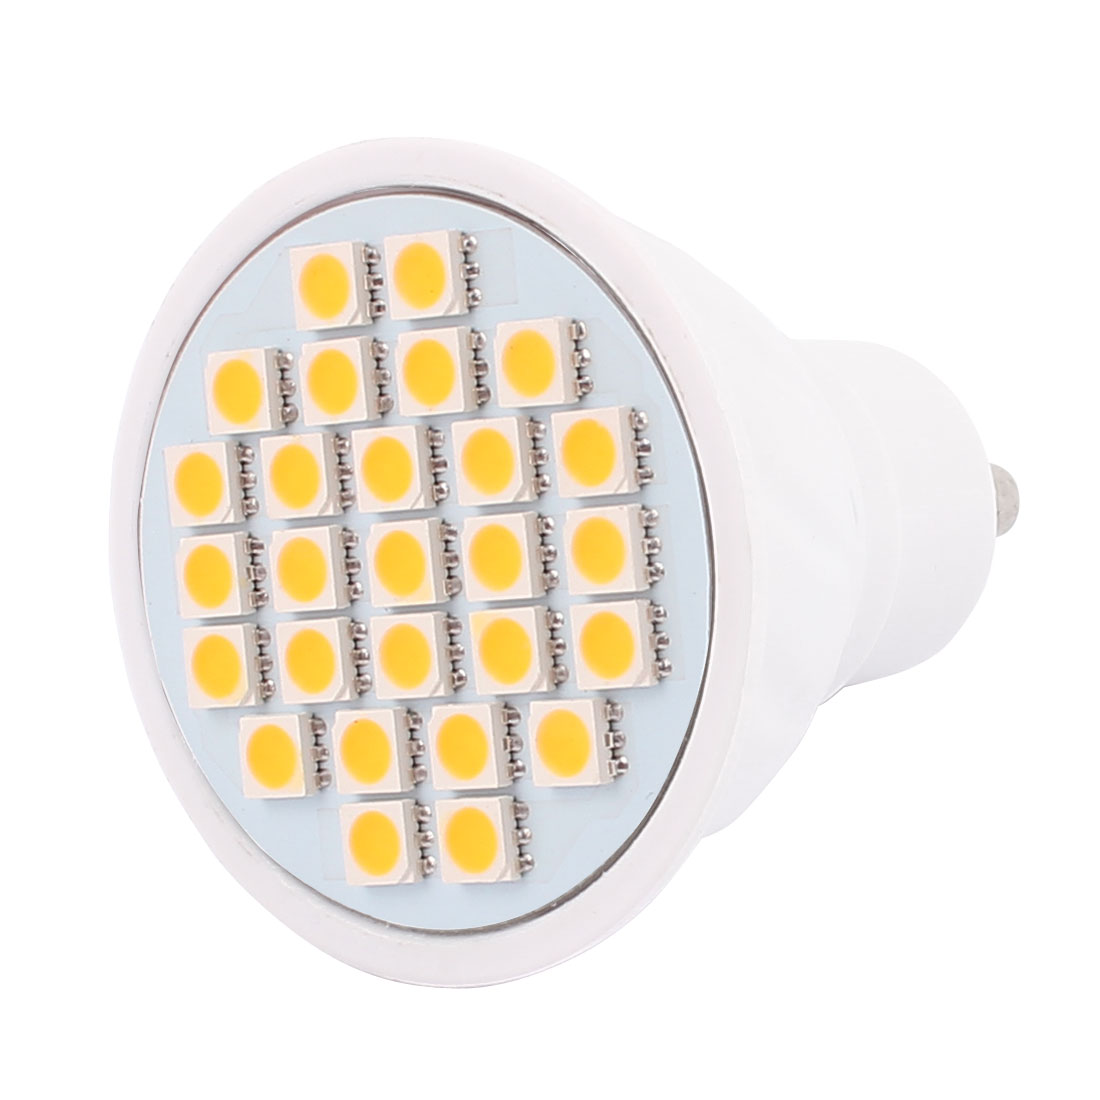 220V GU10 LED Light 4W 5050 SMD 27 LEDs Spotlight Down Lamp Bulb Energy Save Warm White